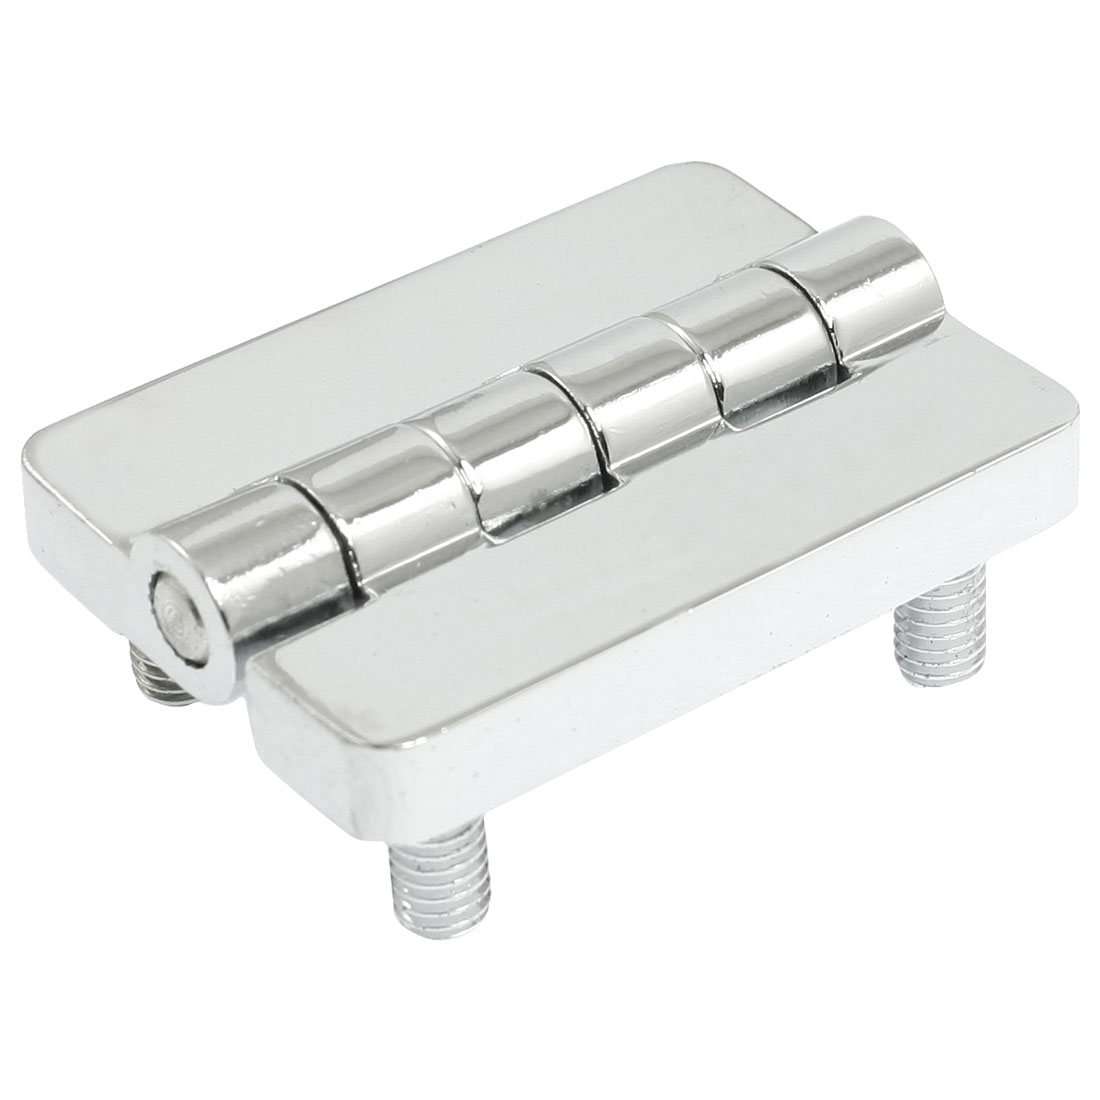 Home Door Chrome Plated 40mm x 53mm Radius Butt Hinge Silver Tone